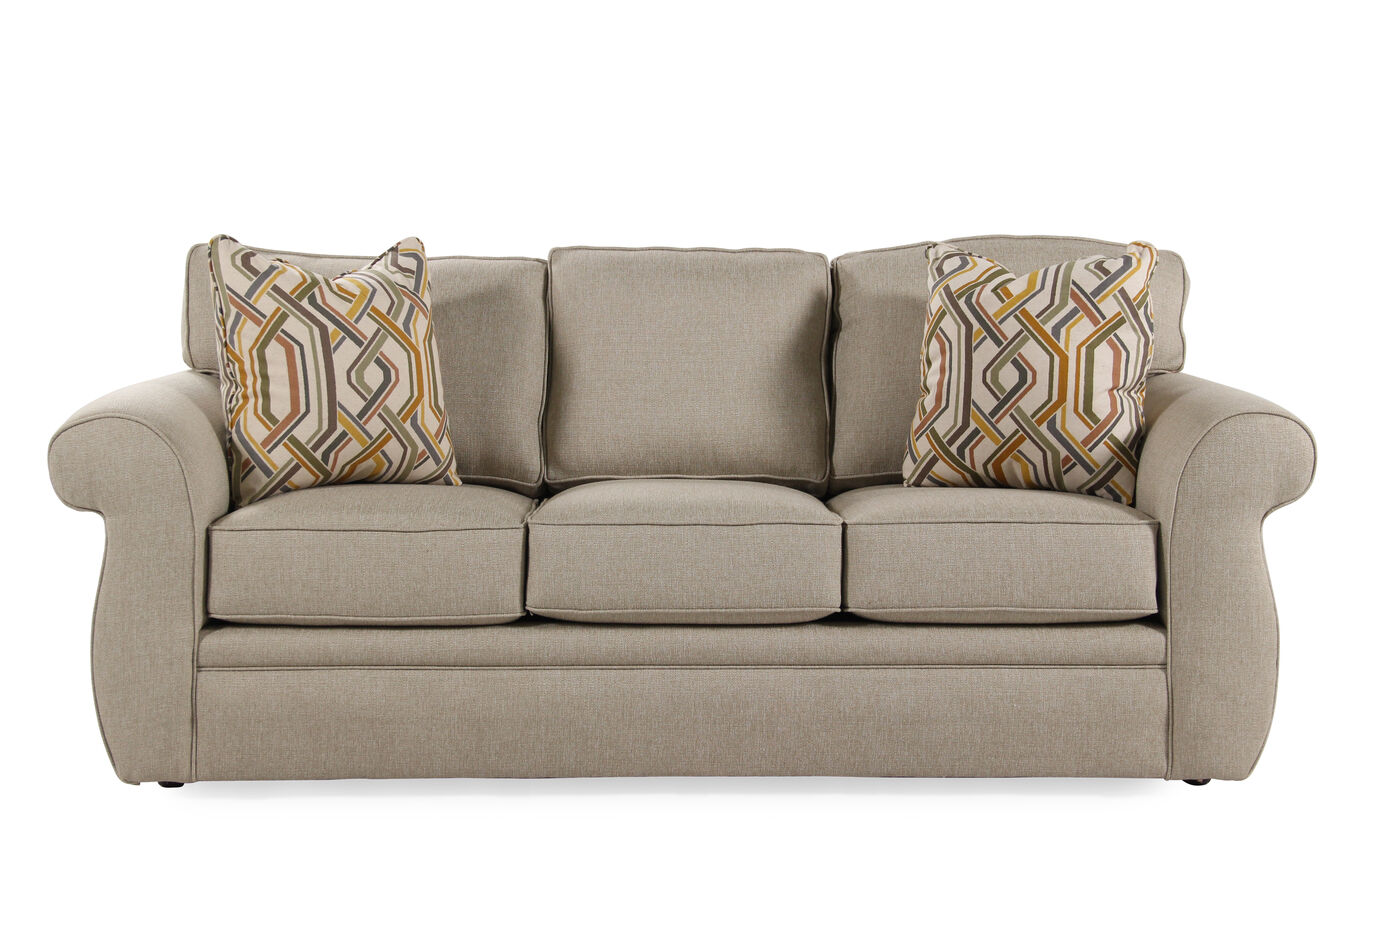 Contemporary 87 Quot Queen Sleeper Sofa In Latte Mathis